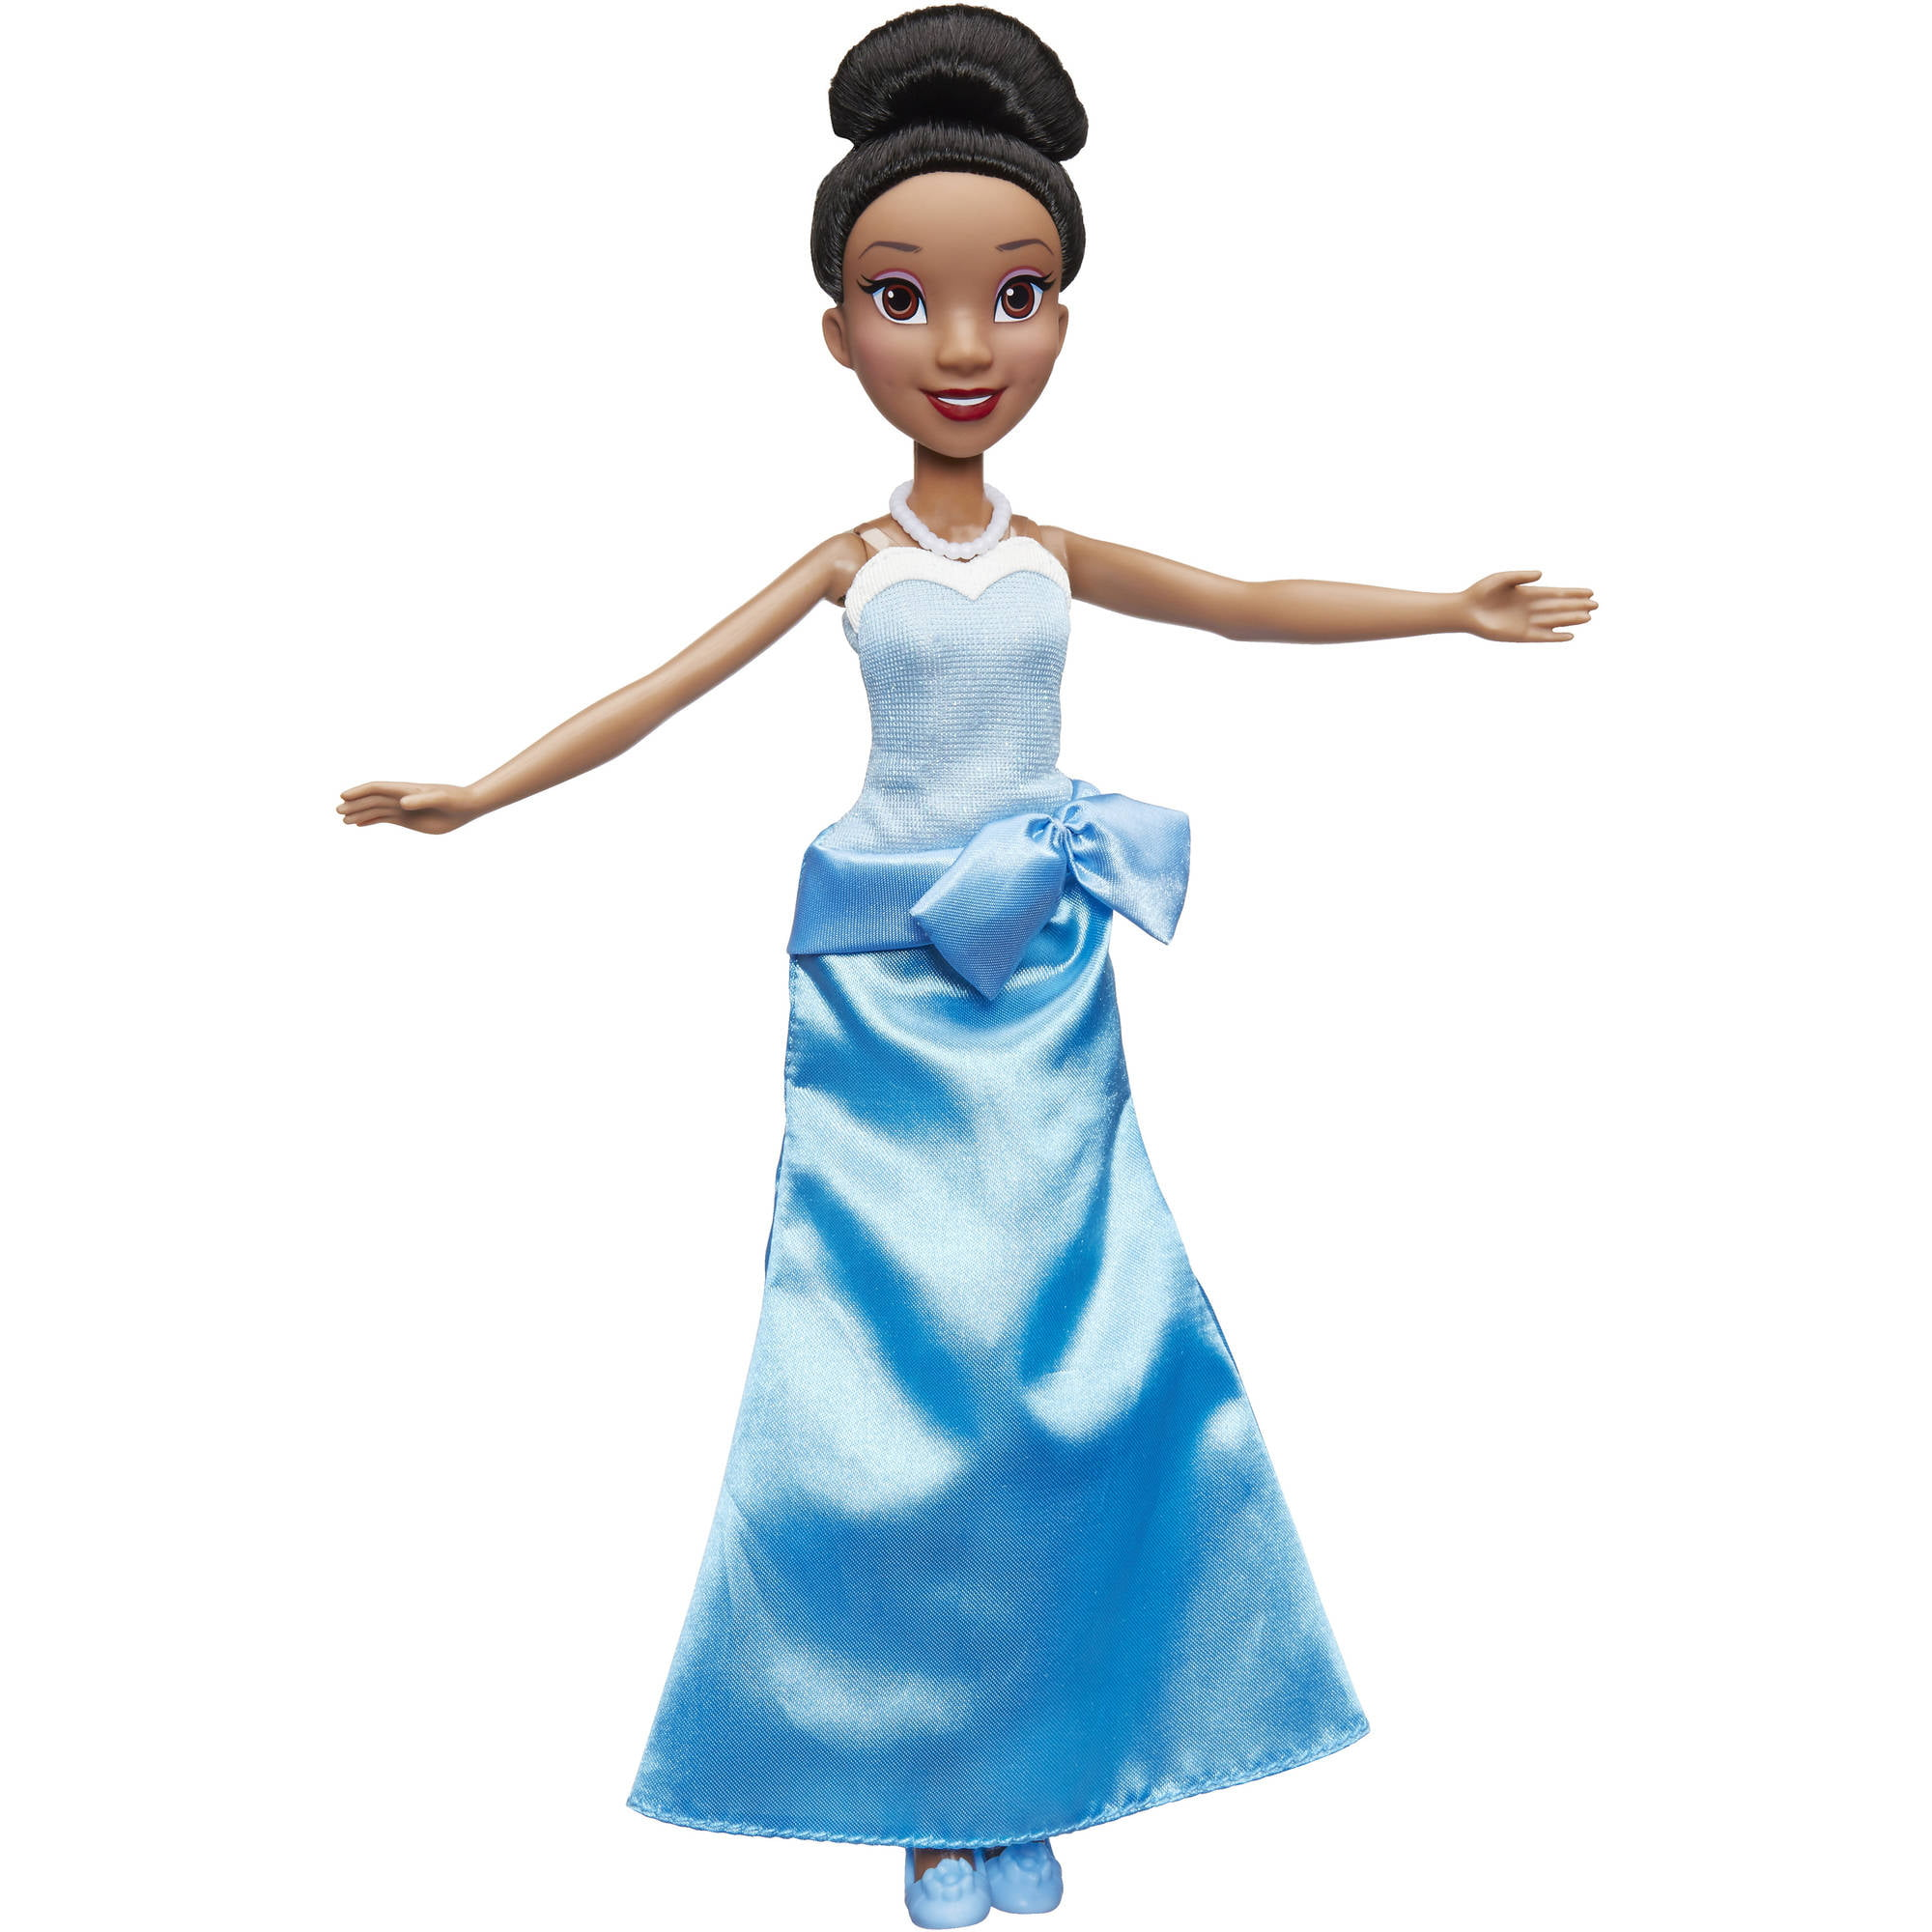 Disney Princess Tiana in Blue Ball Gown - Walmart.com